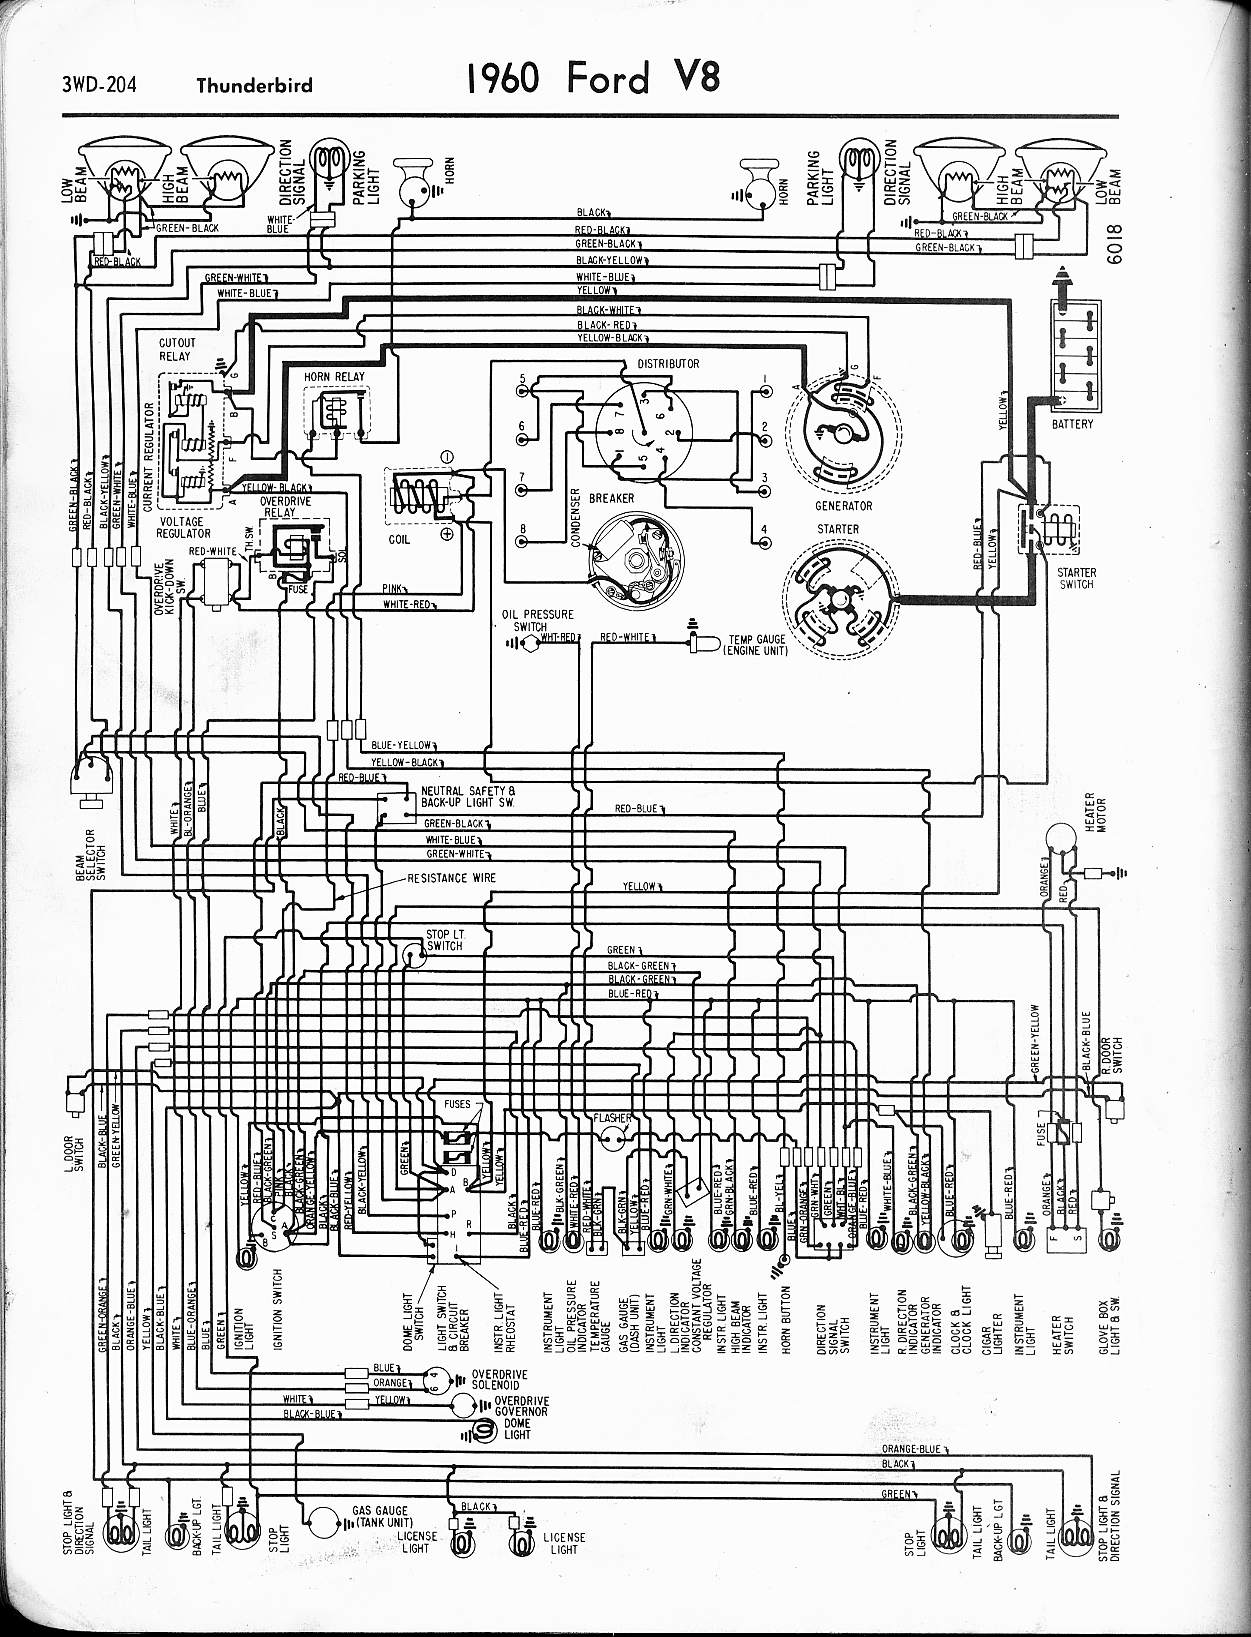 MWire5765 204 57 65 ford wiring diagrams 1957 Thunderbird Dash at webbmarketing.co